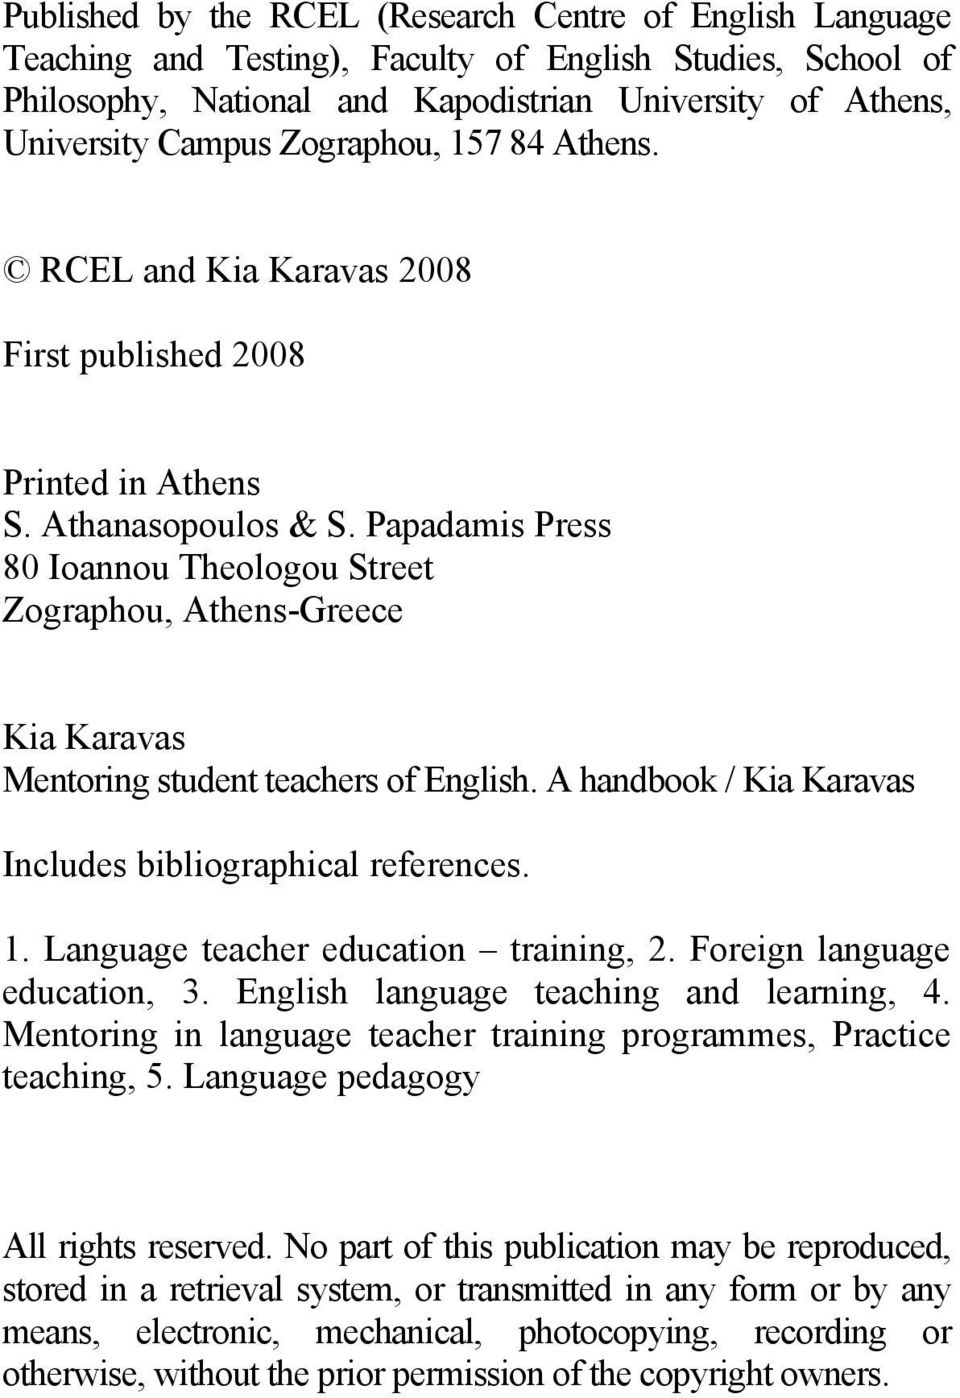 Papadamis Press 80 Ioannou Theologou Street Zographou, Athens-Greece Kia Karavas Mentoring student teachers of English. A handbook / Kia Karavas Includes bibliographical references. 1.